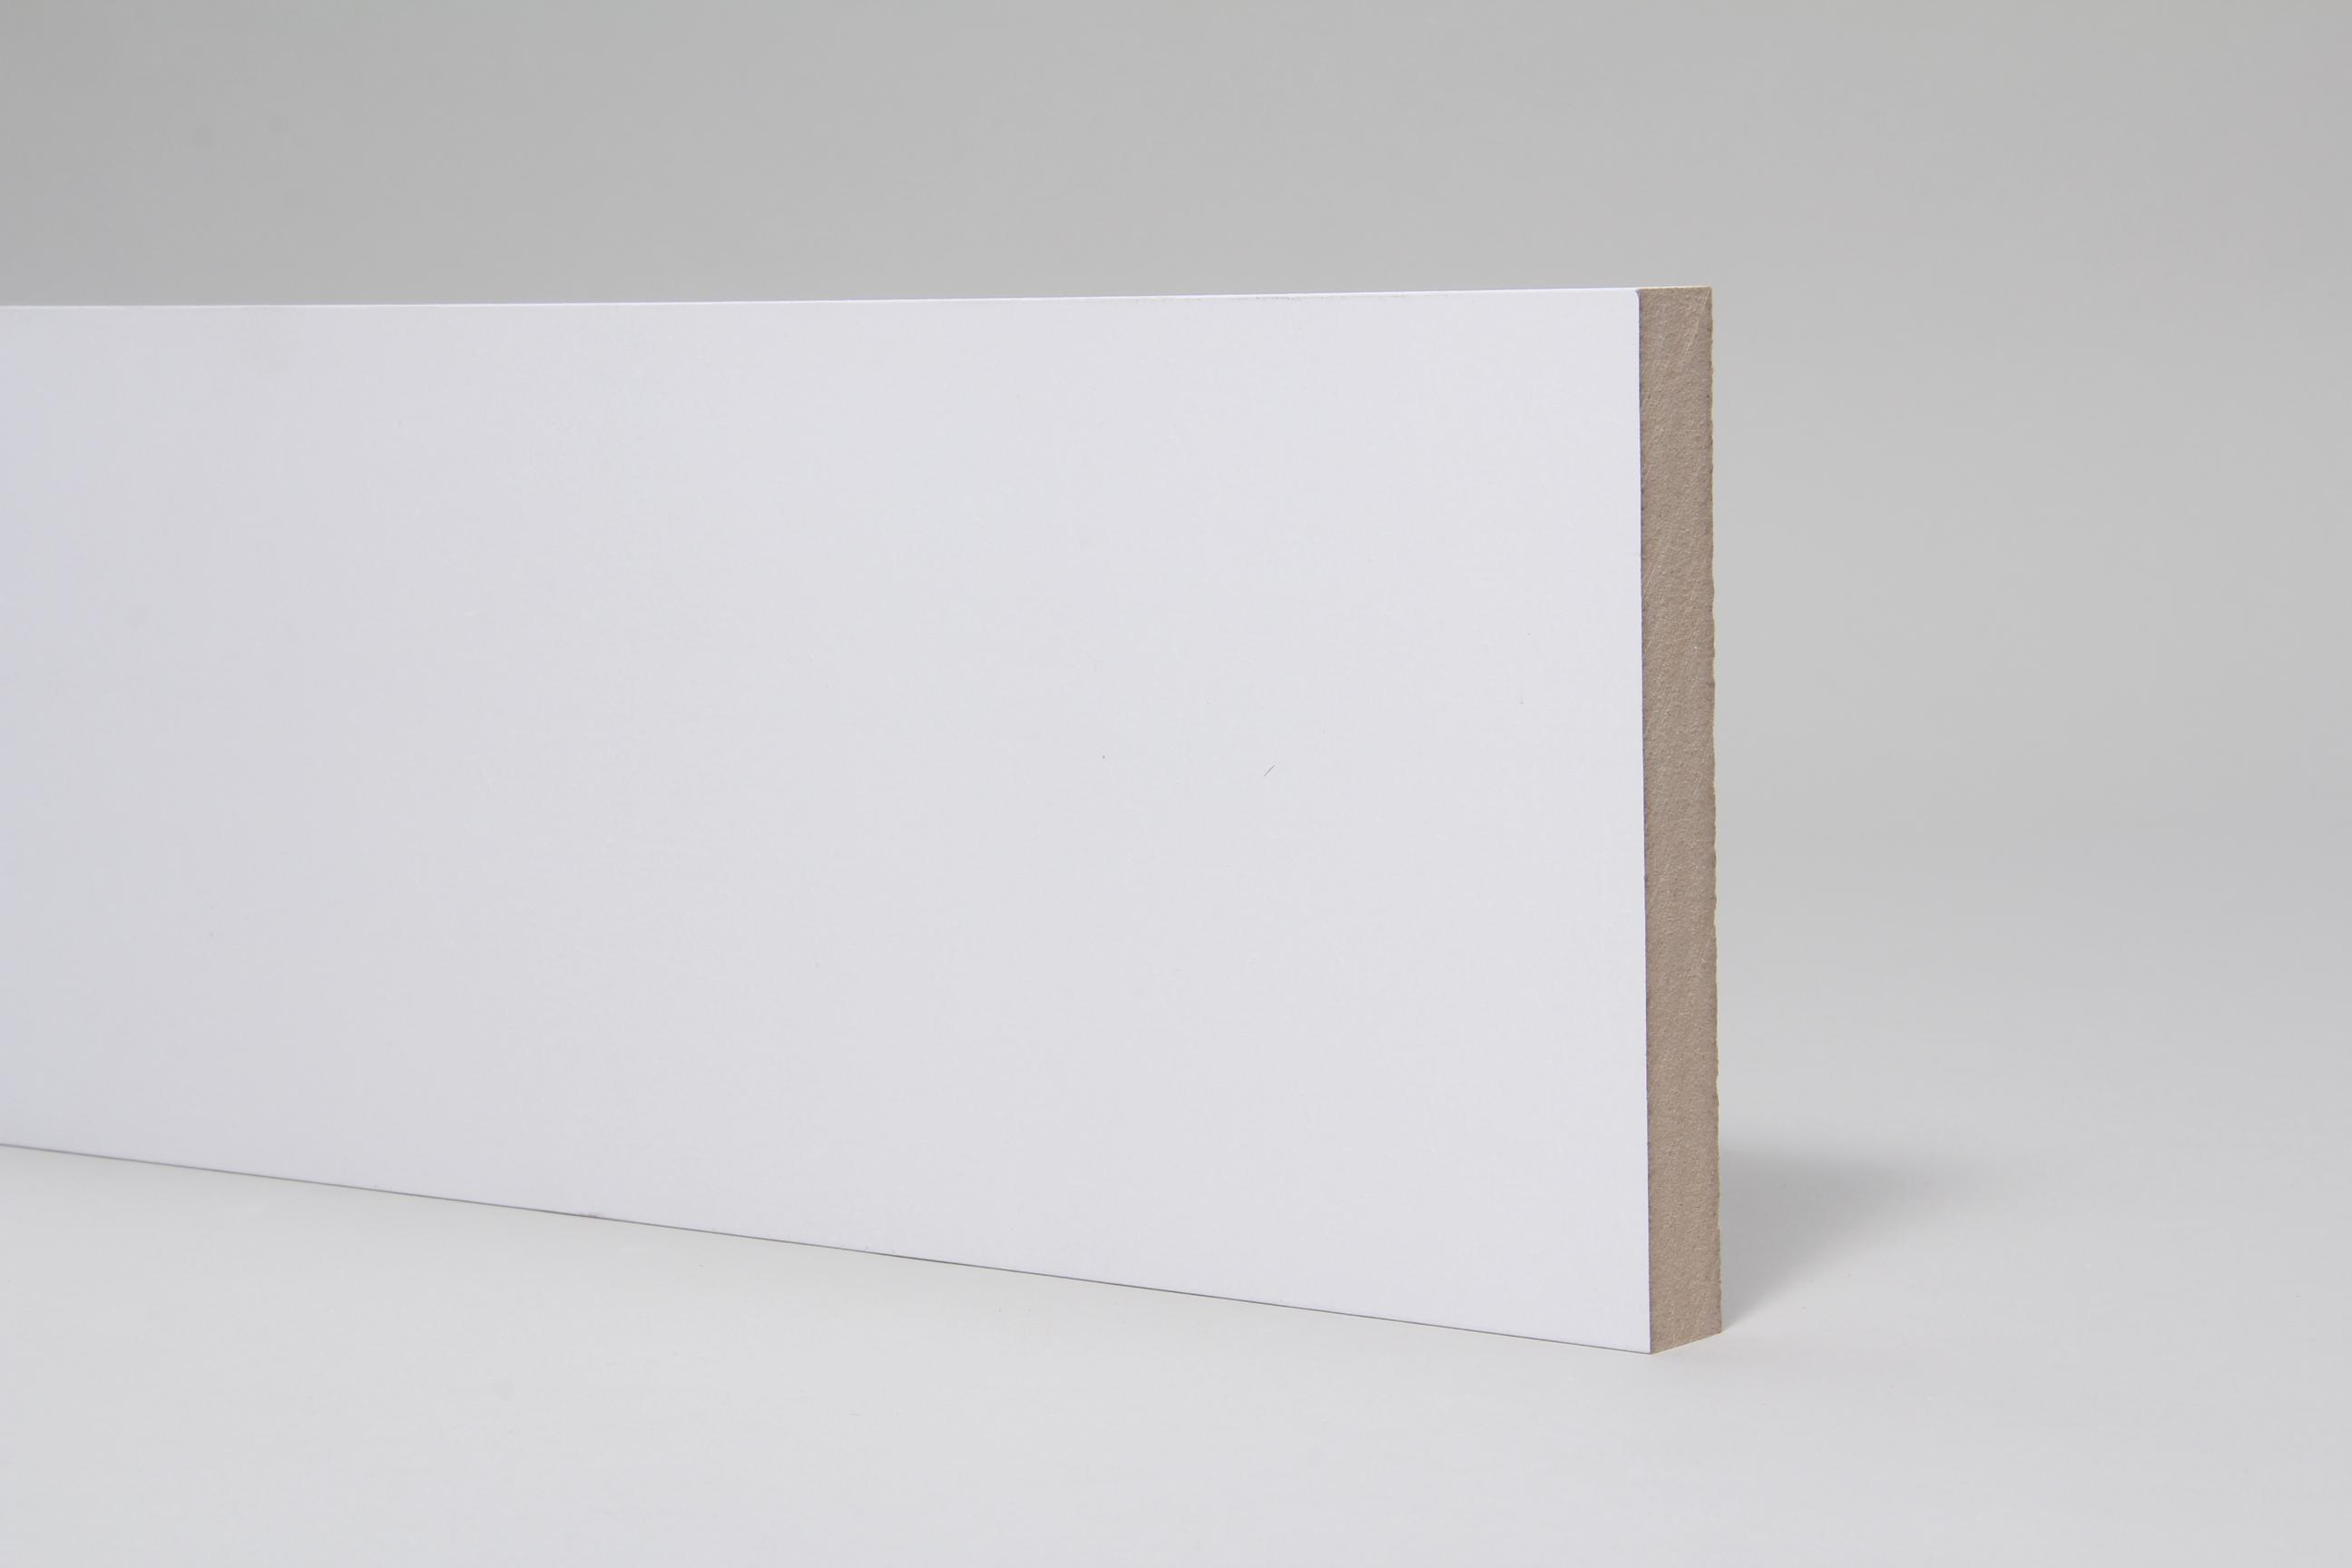 Plain Square Edge 18mm x 144mm x 4.4 Mtr Primed